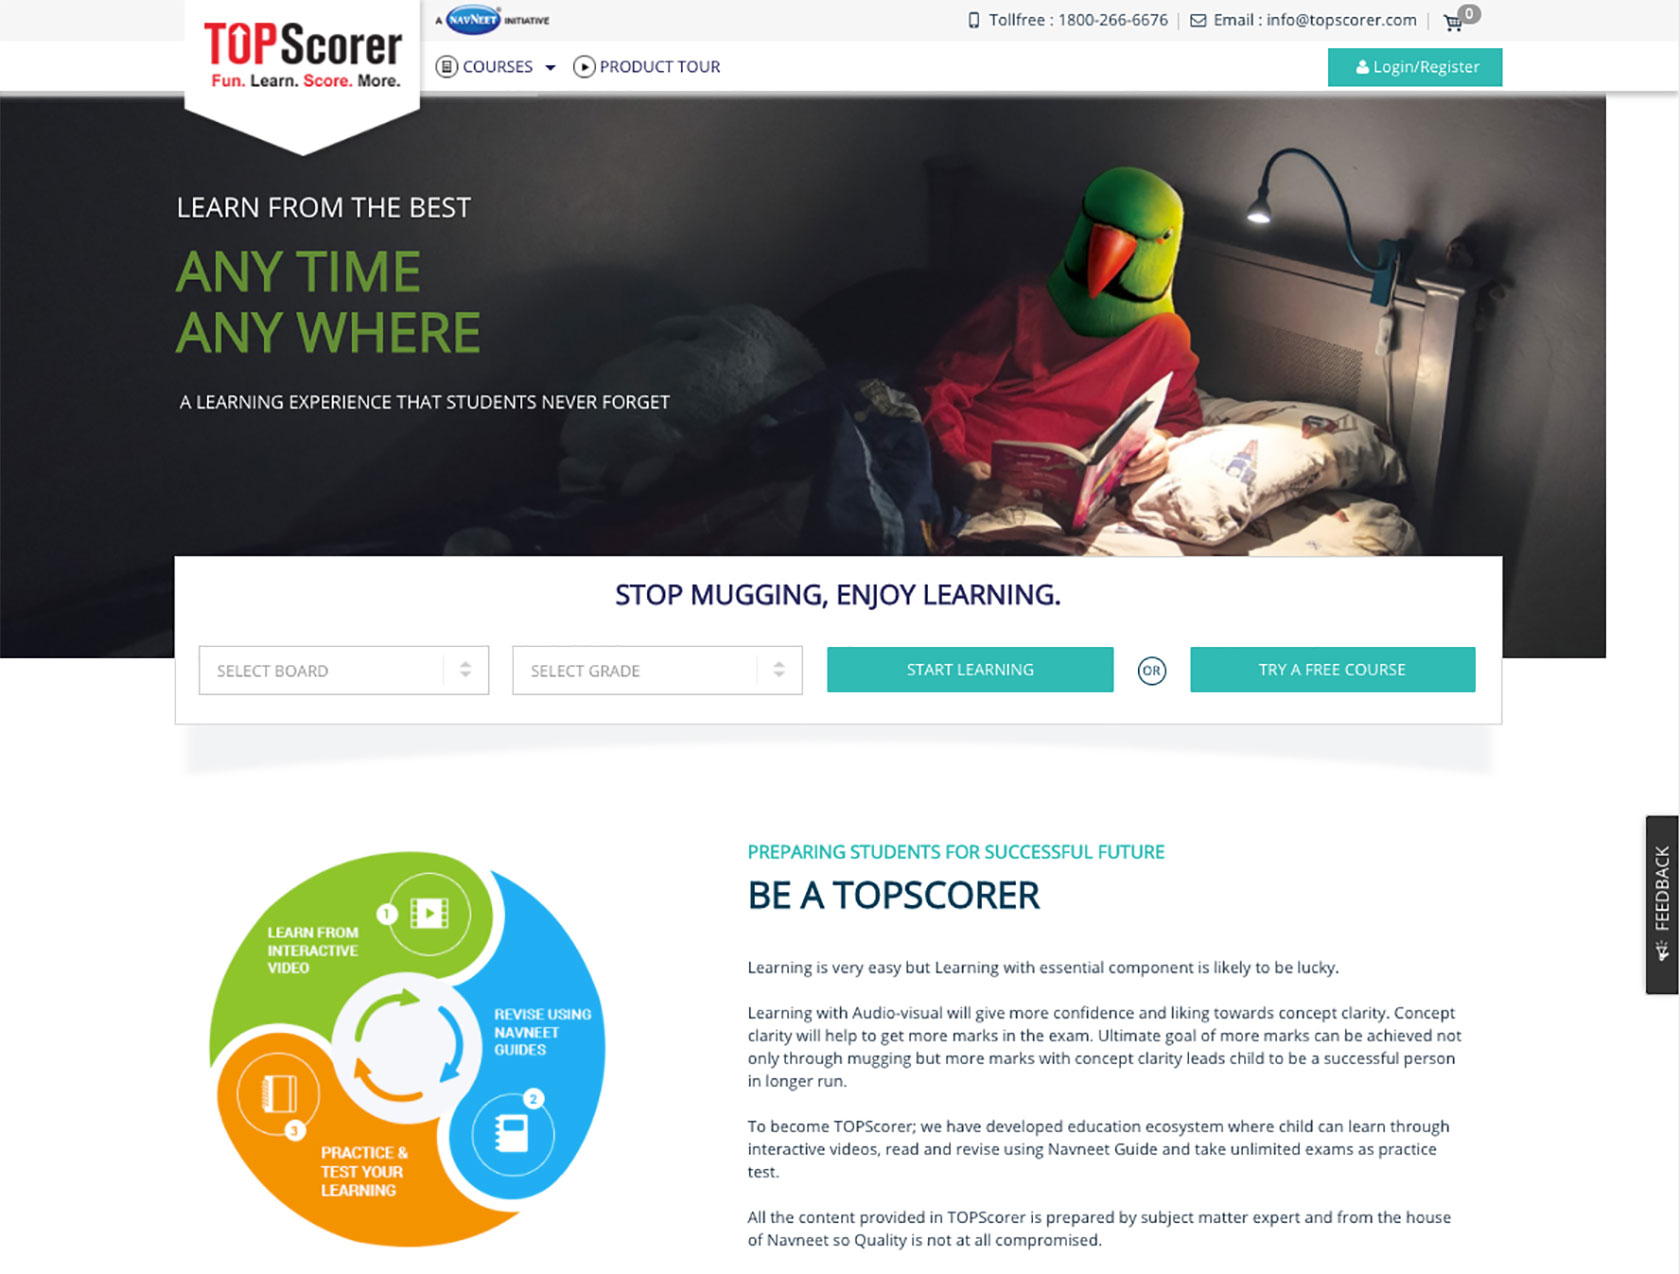 TopScorer Home Page